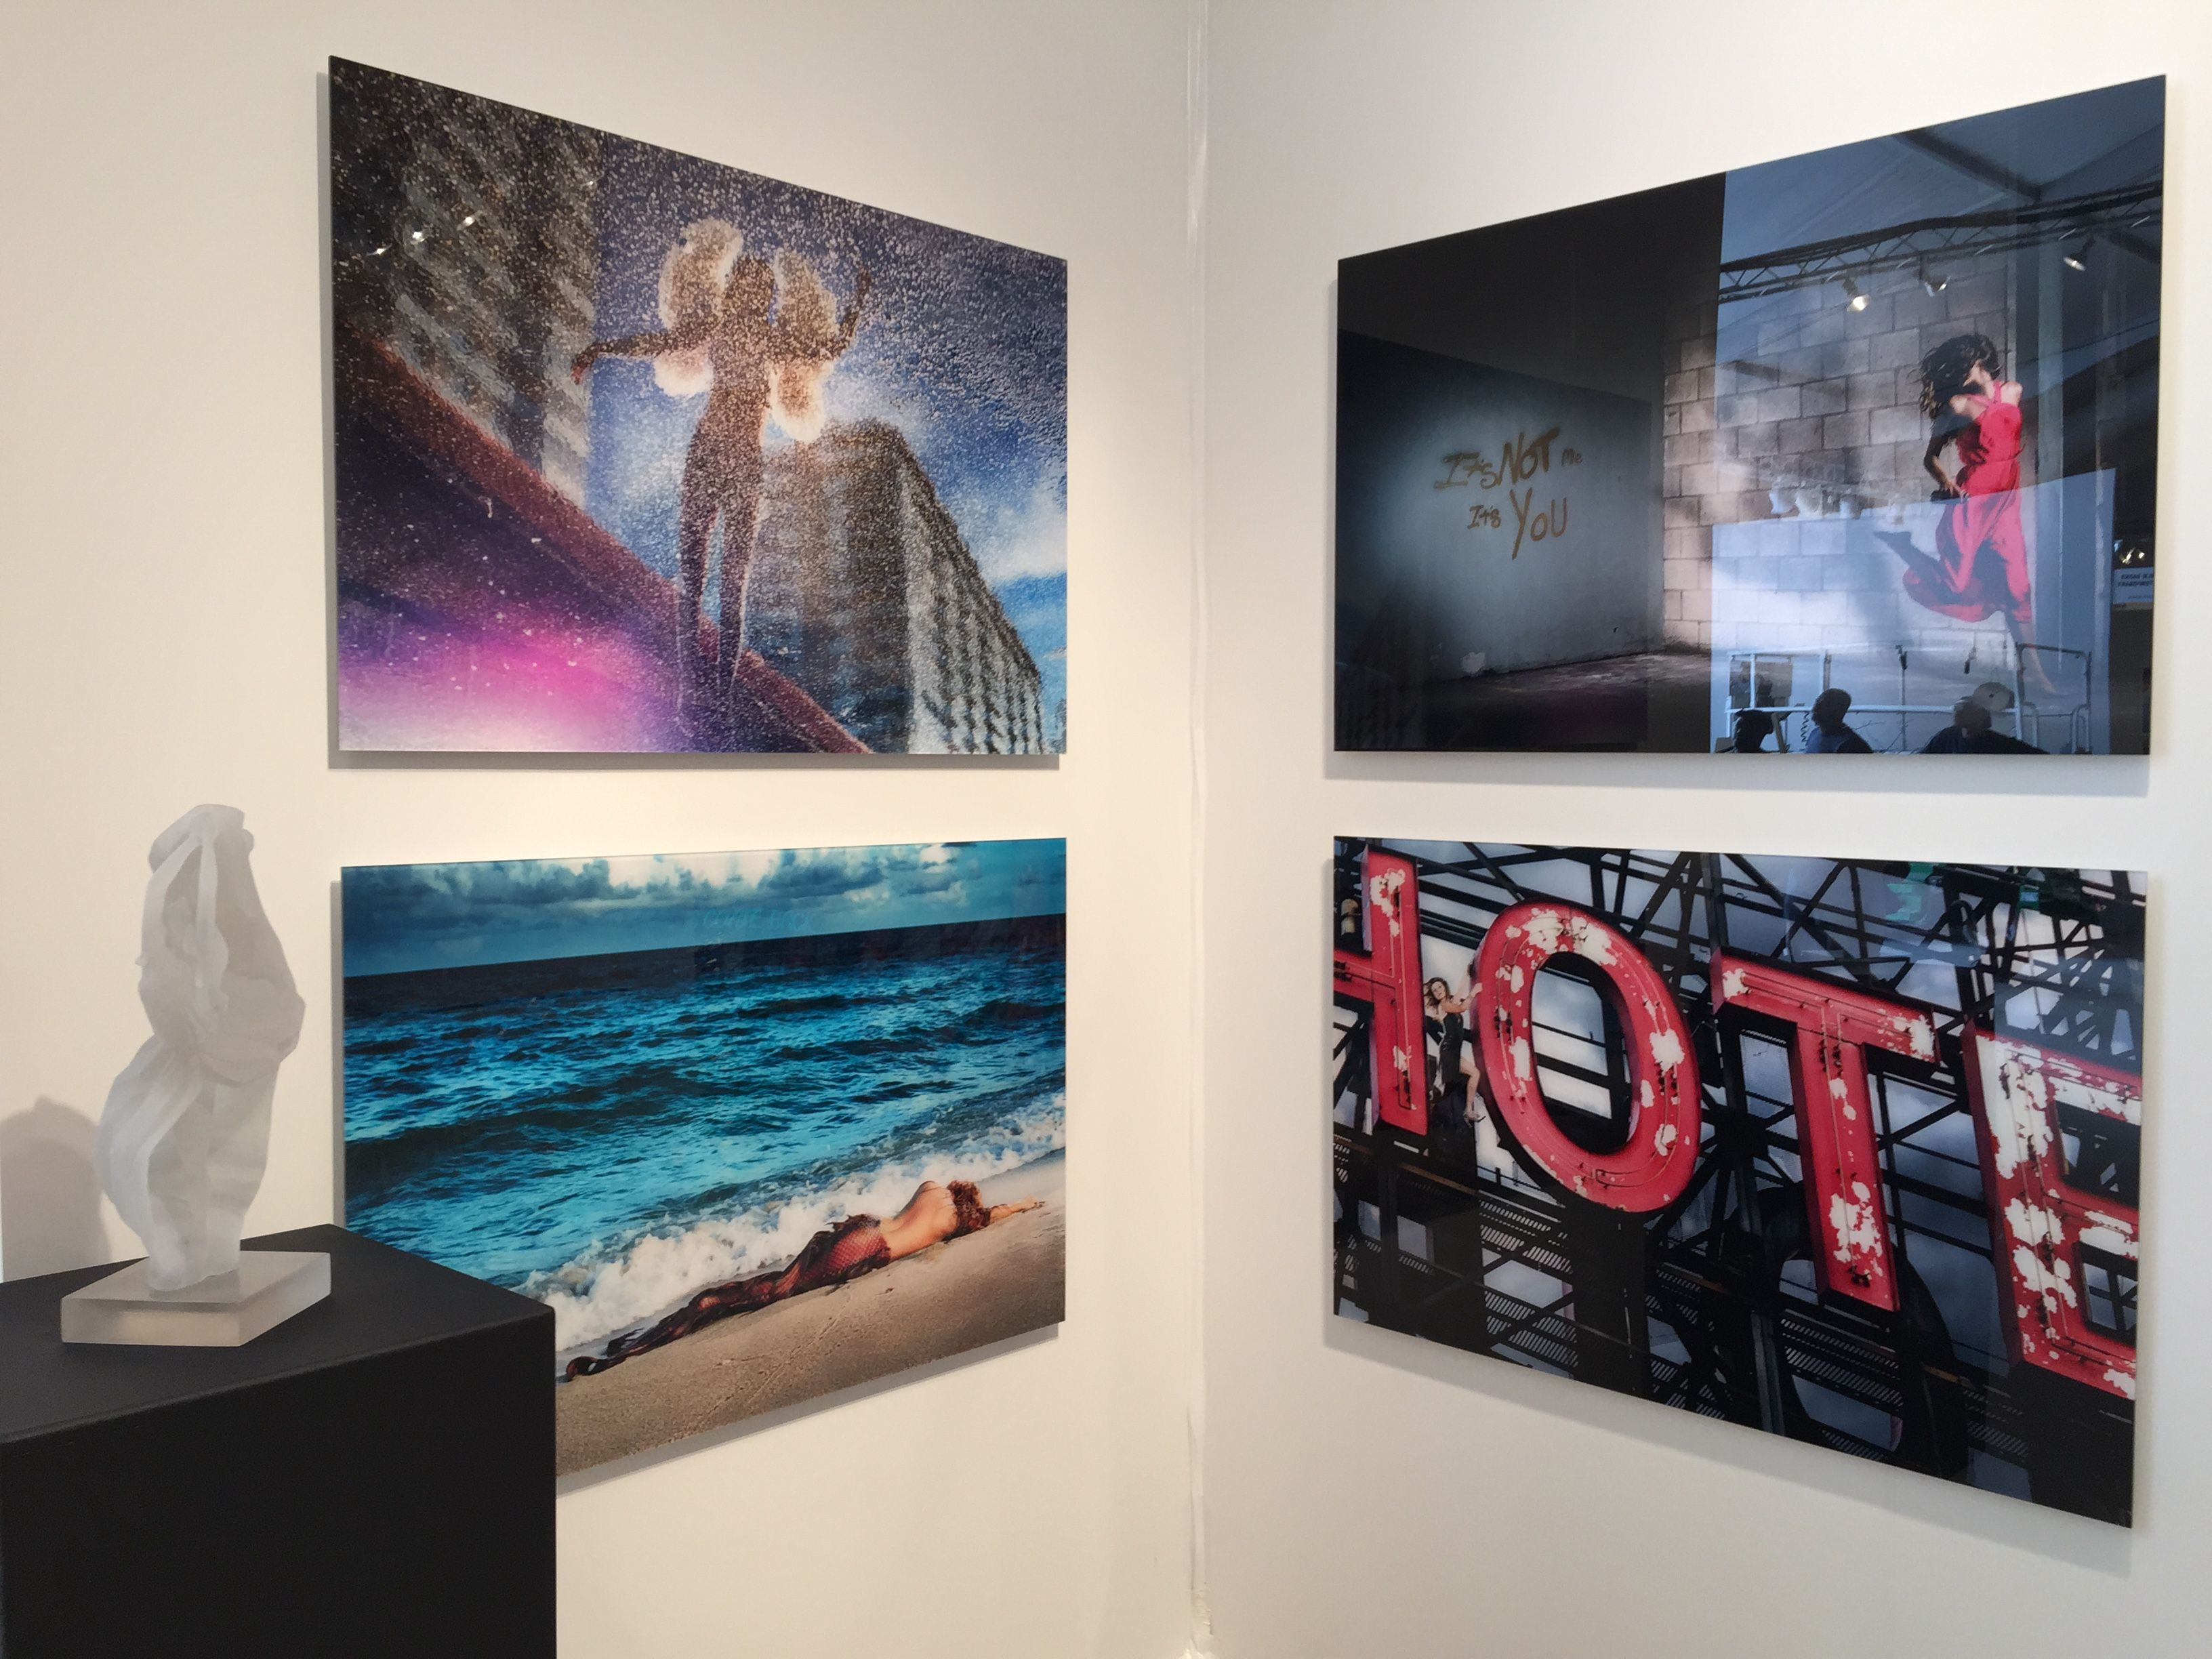 Day 4 at #ArtMiami! Swing by booth A32 to check out new works by notable photographer, #DavidDrebin!